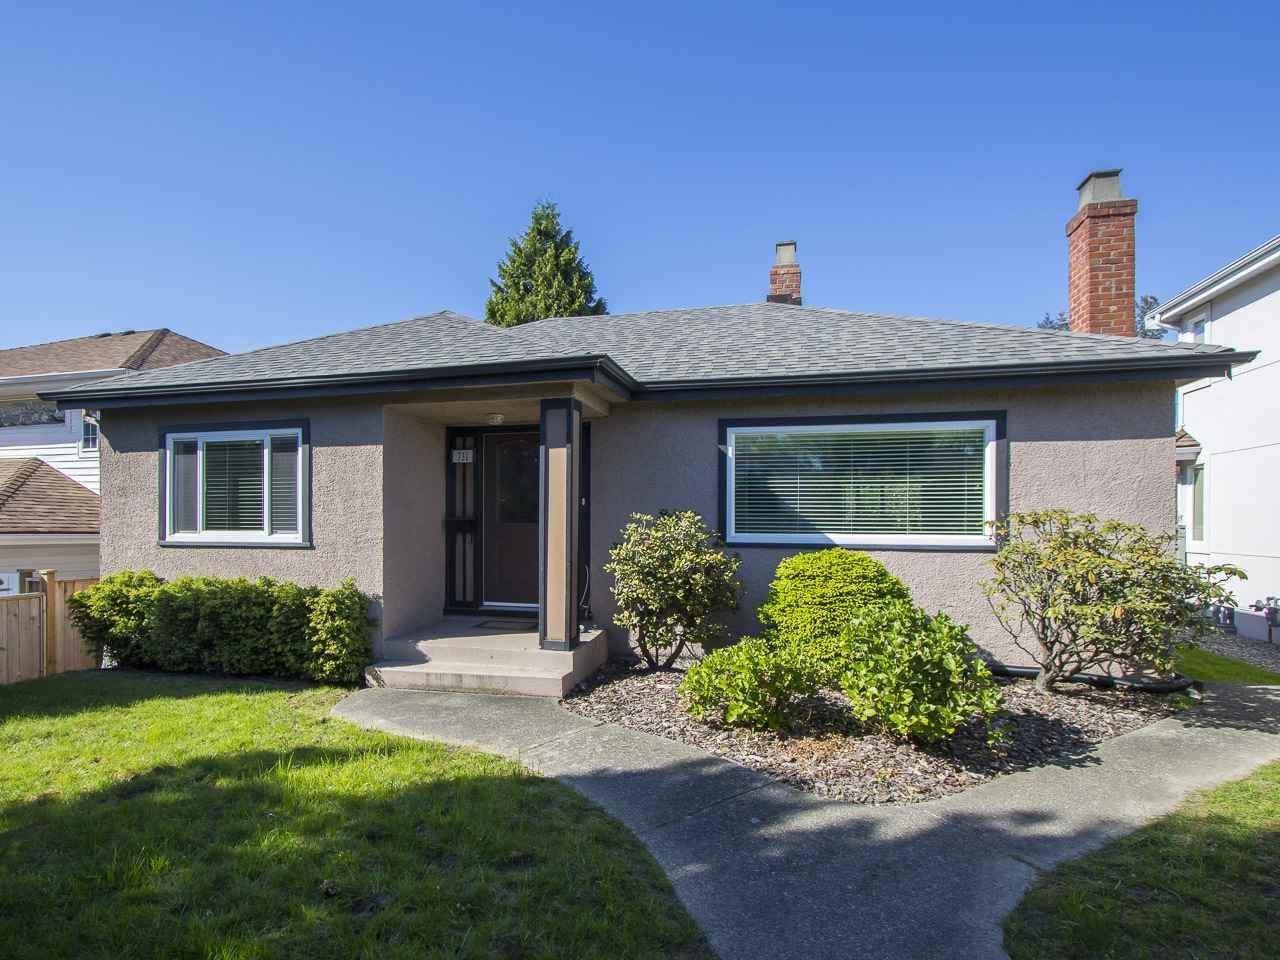 Photo 3: Photos: 731 W KING EDWARD AVENUE in Vancouver: Cambie House for sale (Vancouver West)  : MLS®# R2204992